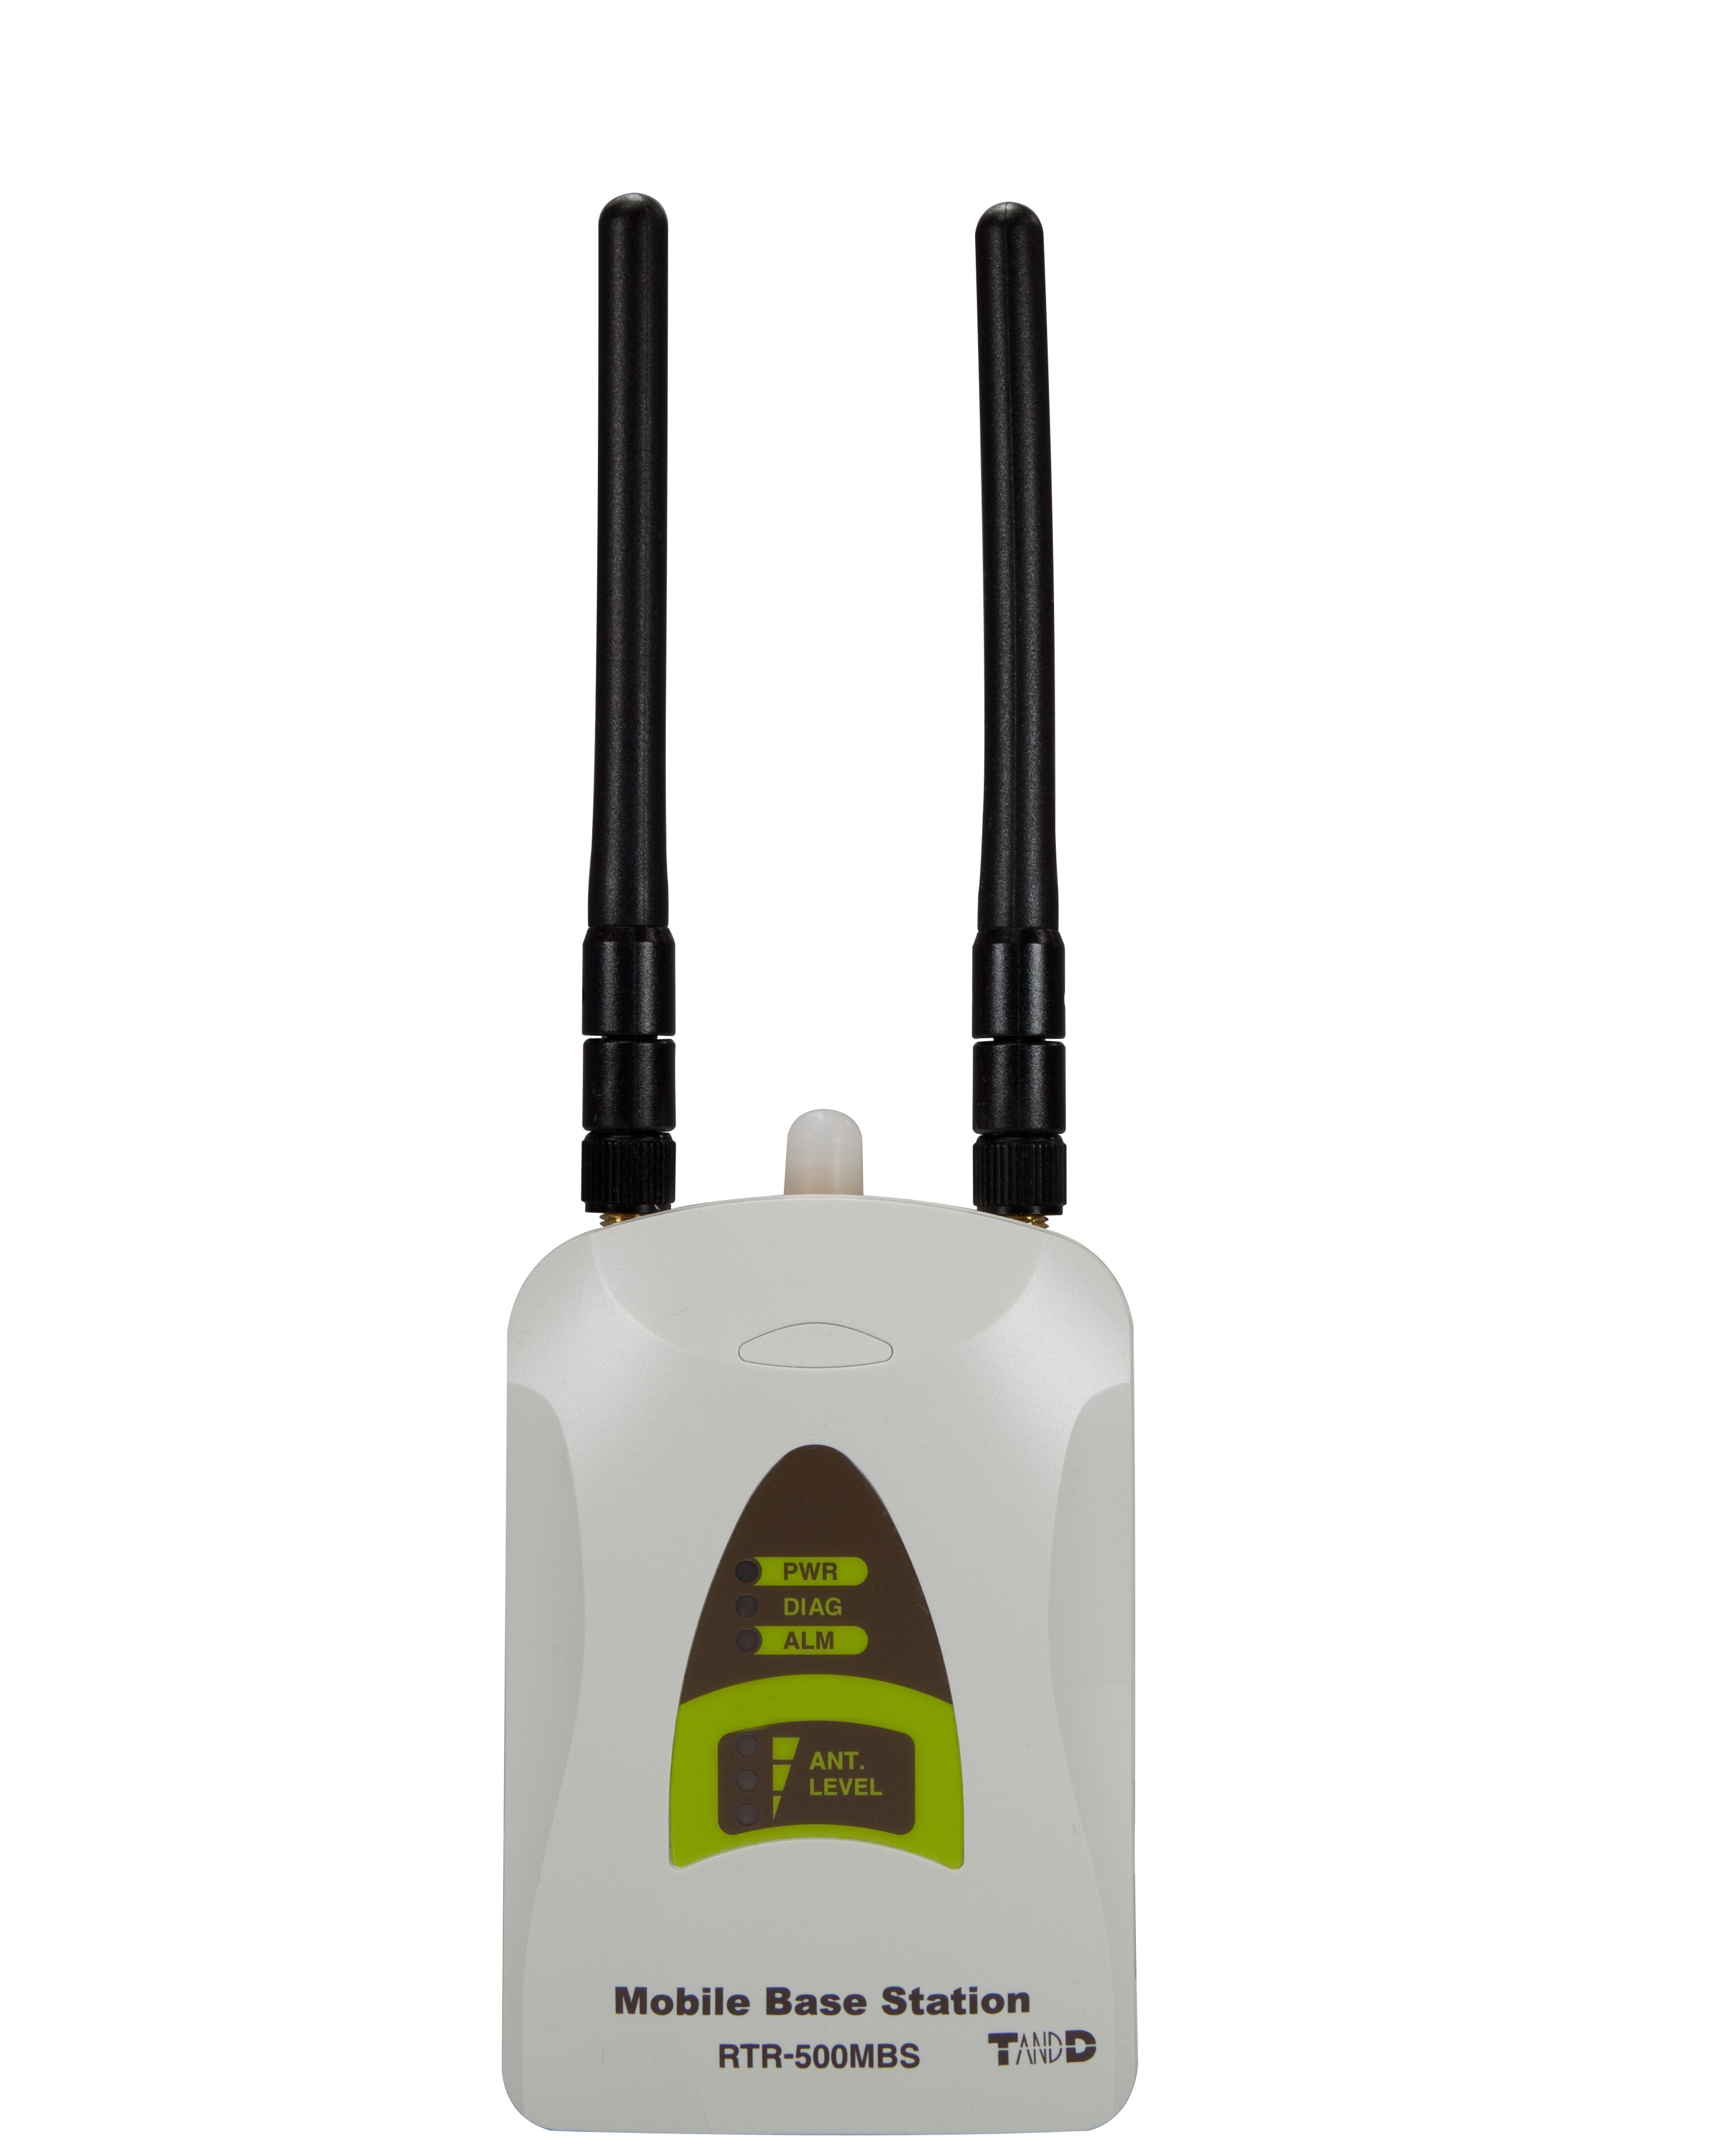 Rtr 500mbs A Mobile Base Station